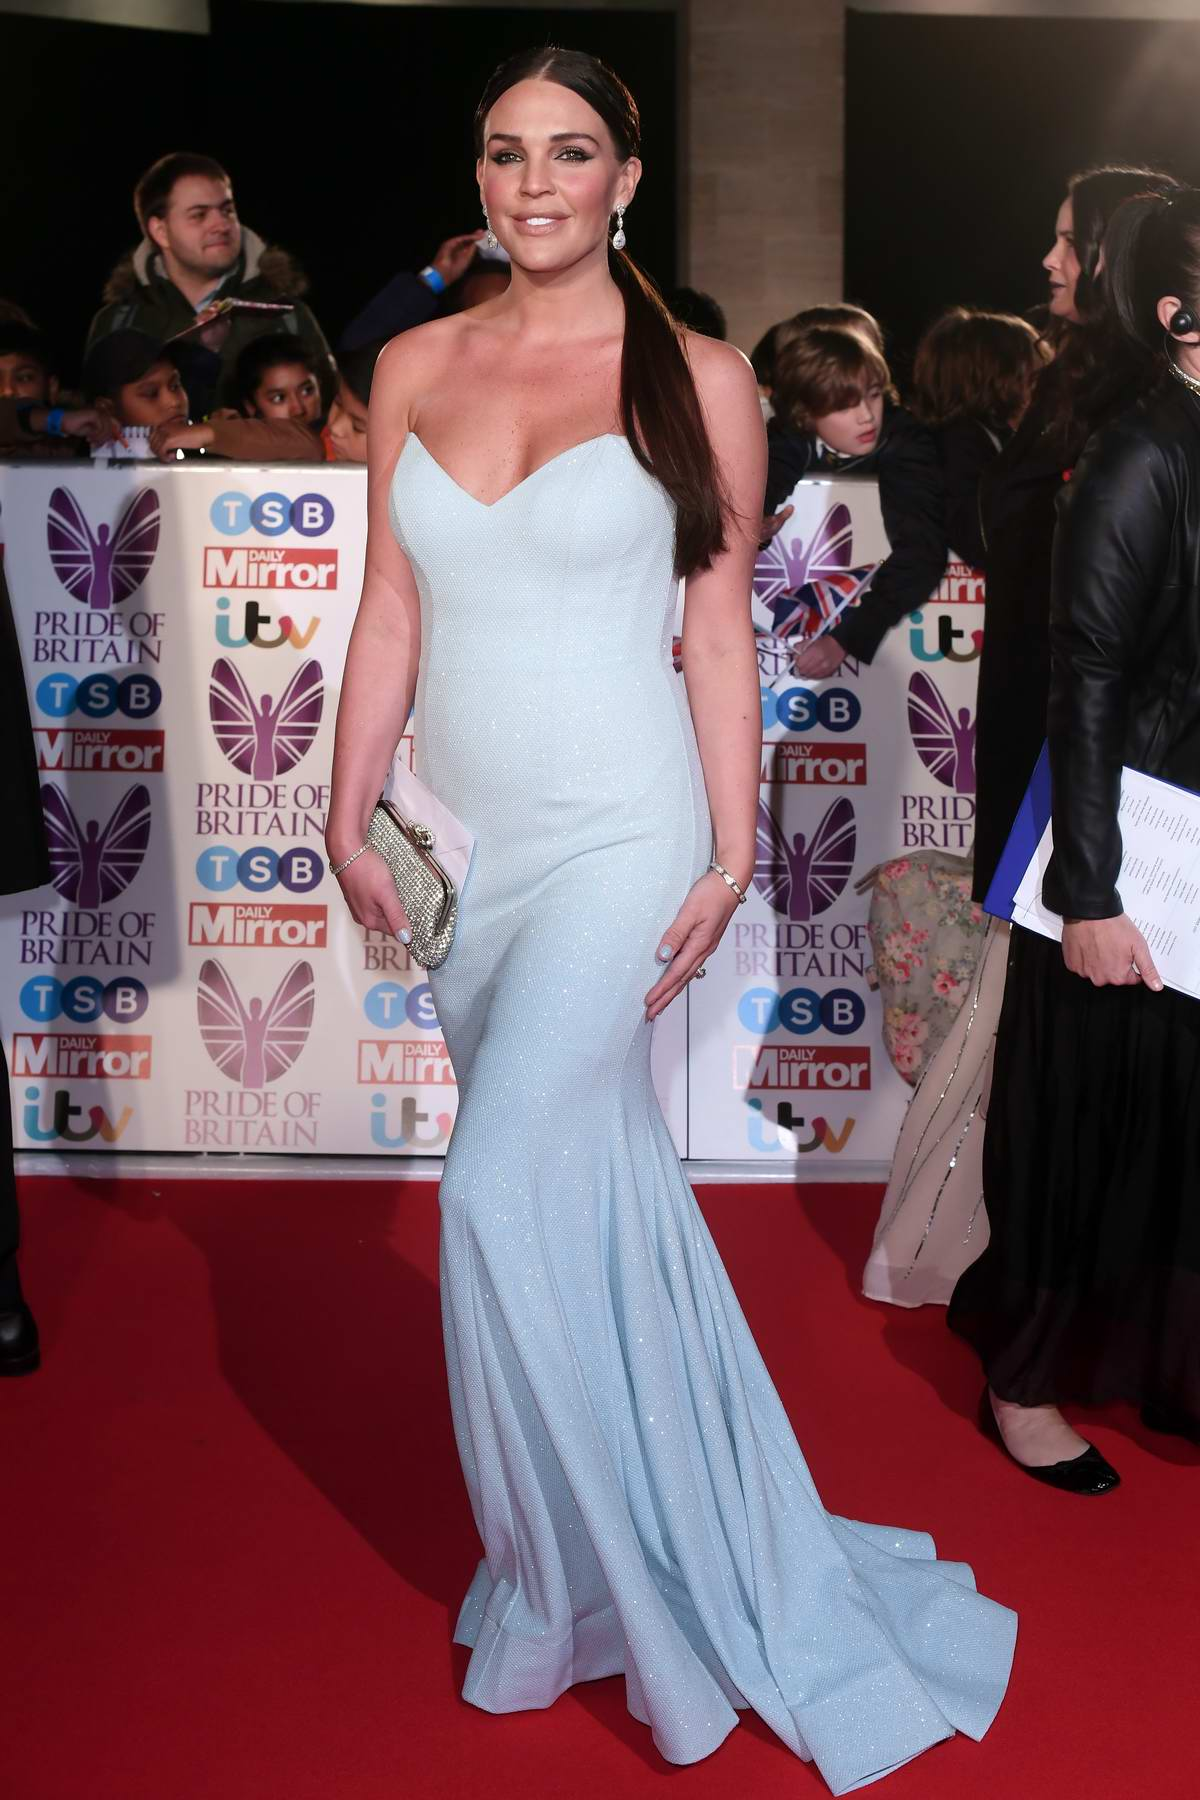 Danielle Lloyd at the Pride of Britain Awards held at the Grosvenor House in London